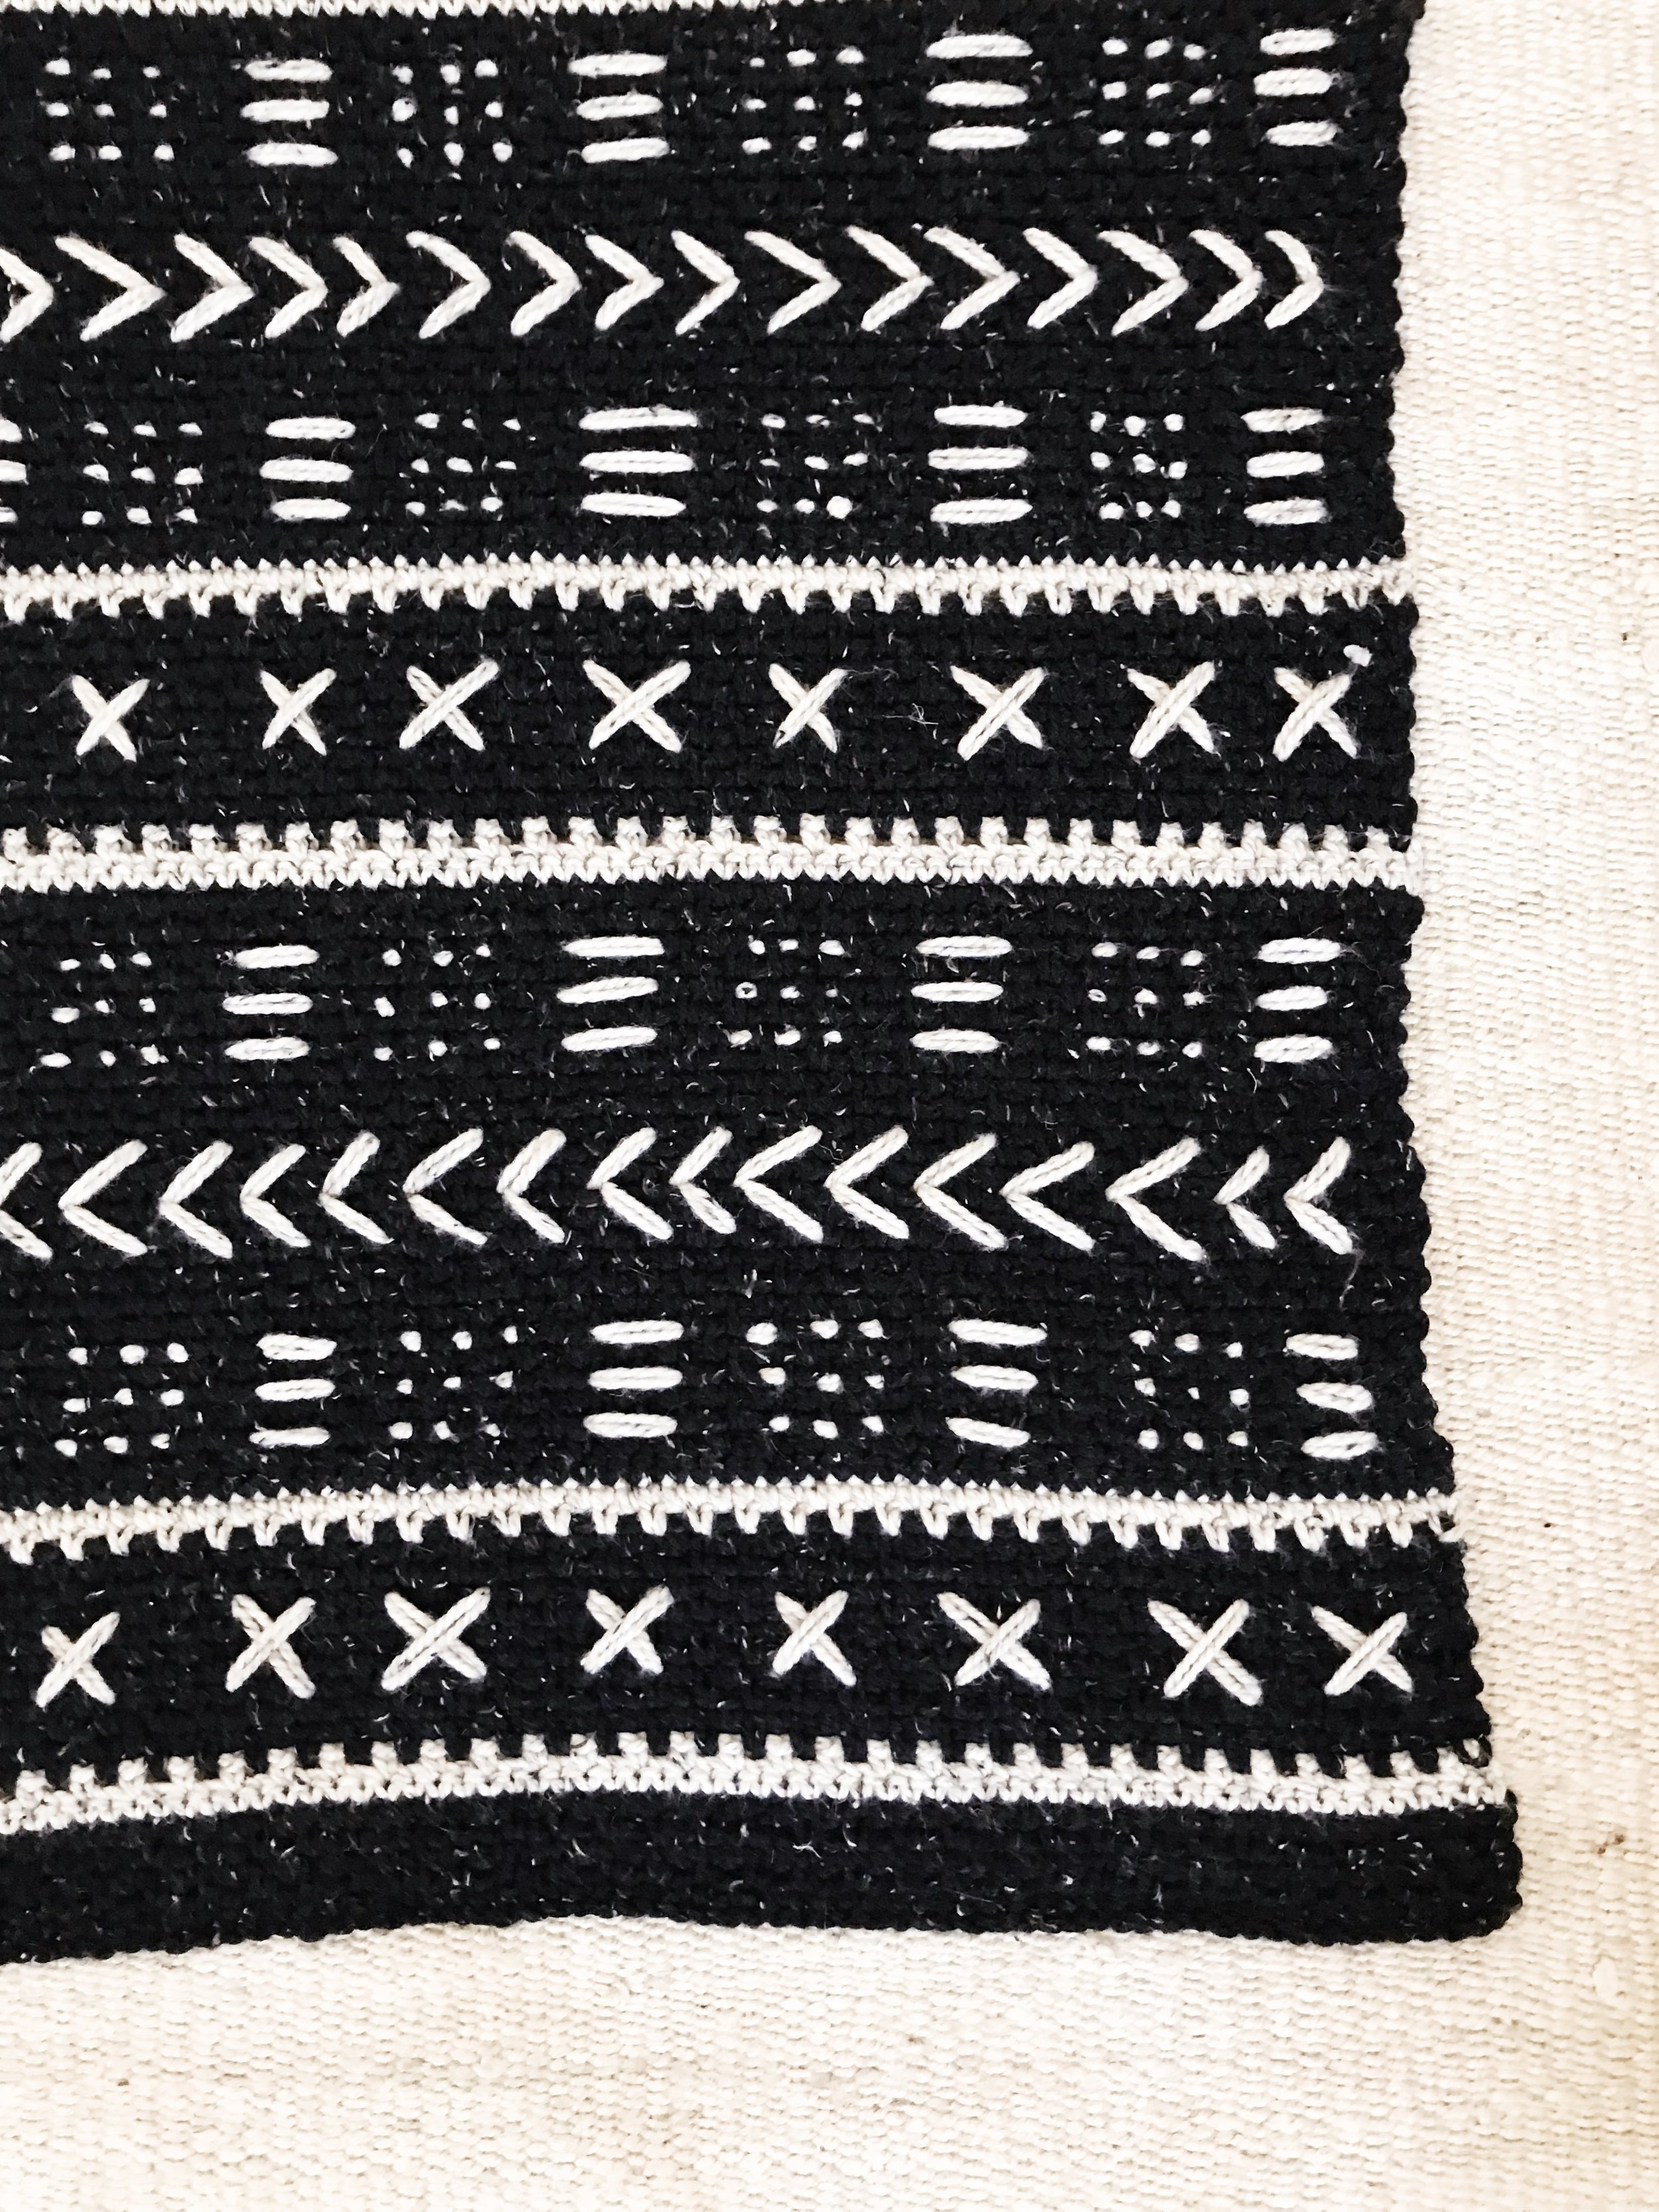 Mudcloth Blanket pattern by Two of Wands